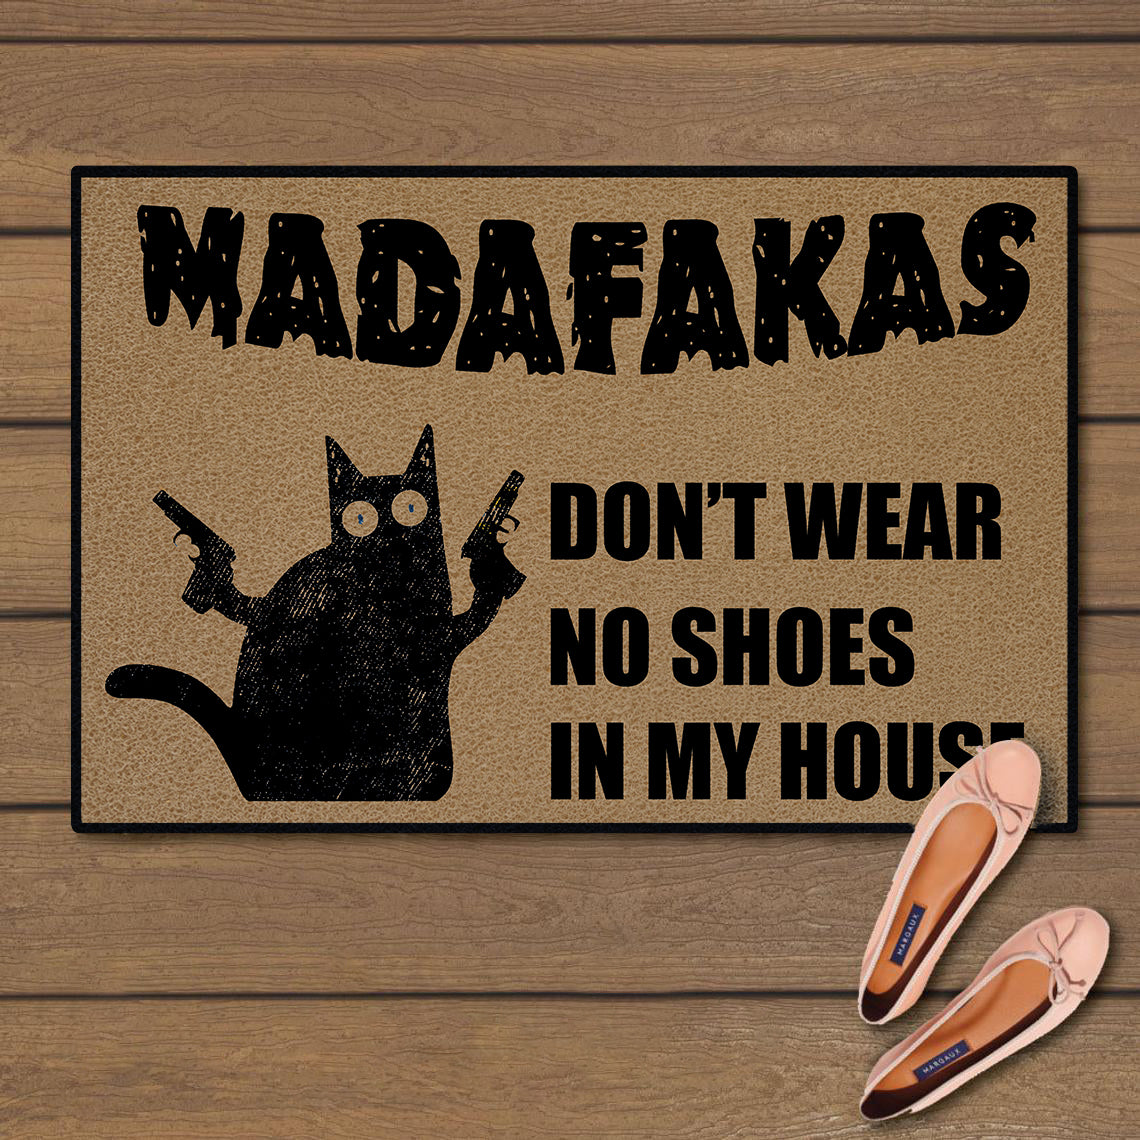 Madafakas Don't wear no shoes in my house doormat 3